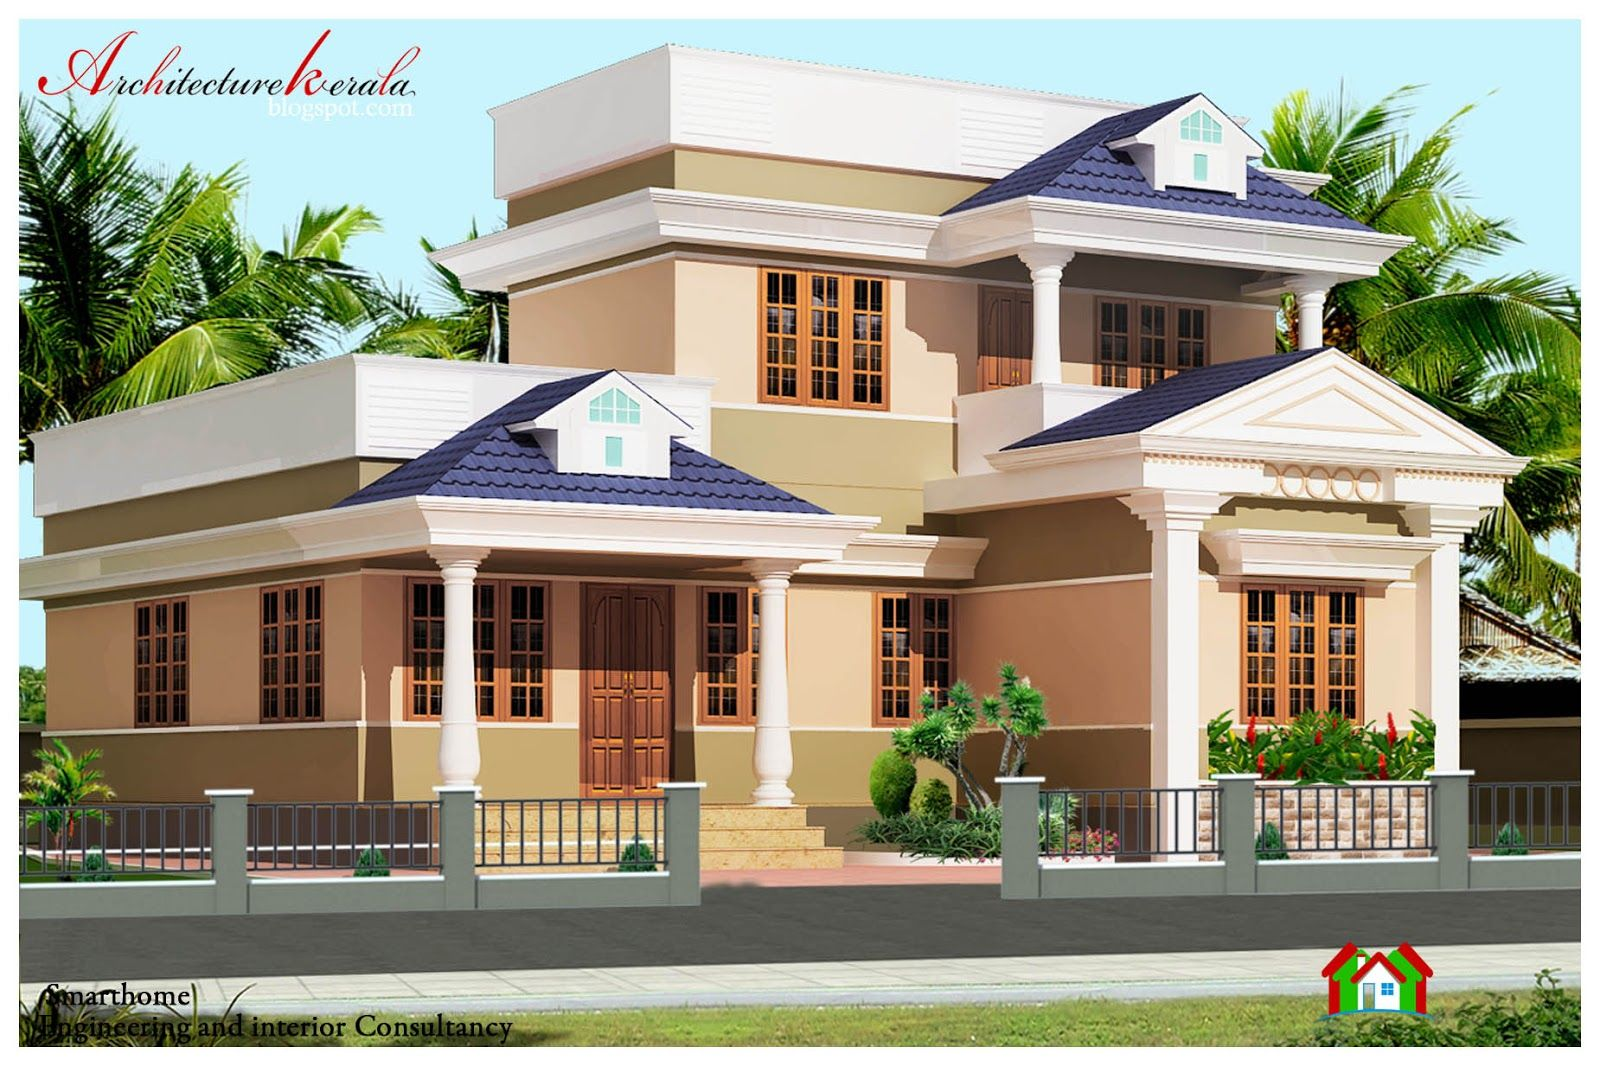 1 bedroom house plans kerala style design ideas 2017 2018